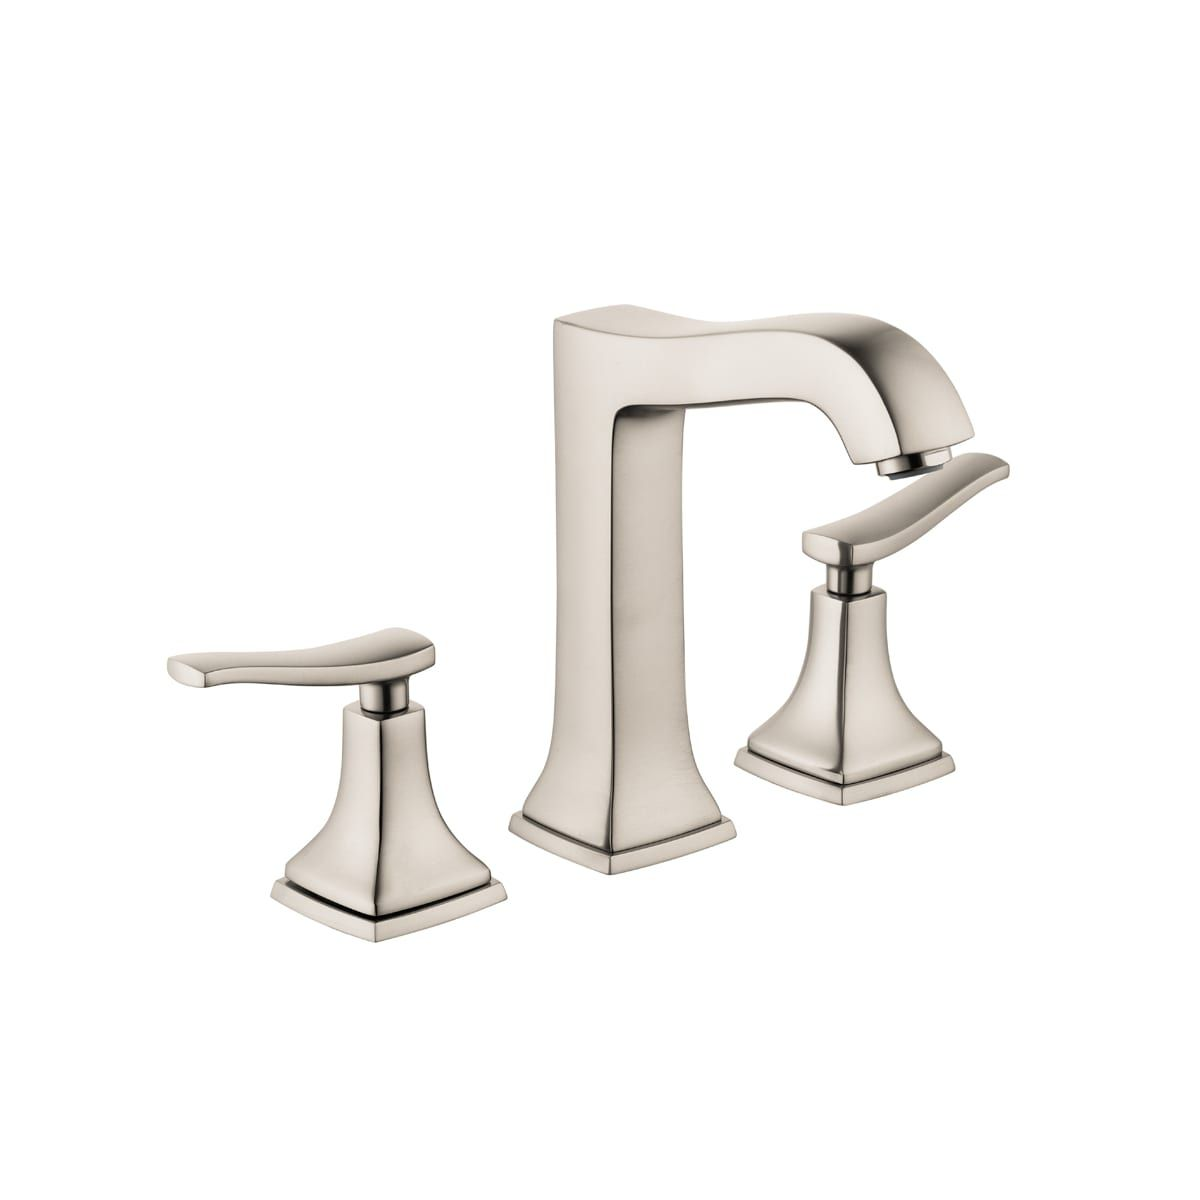 Hansgrohe 31331 With Images Widespread Bathroom Faucet